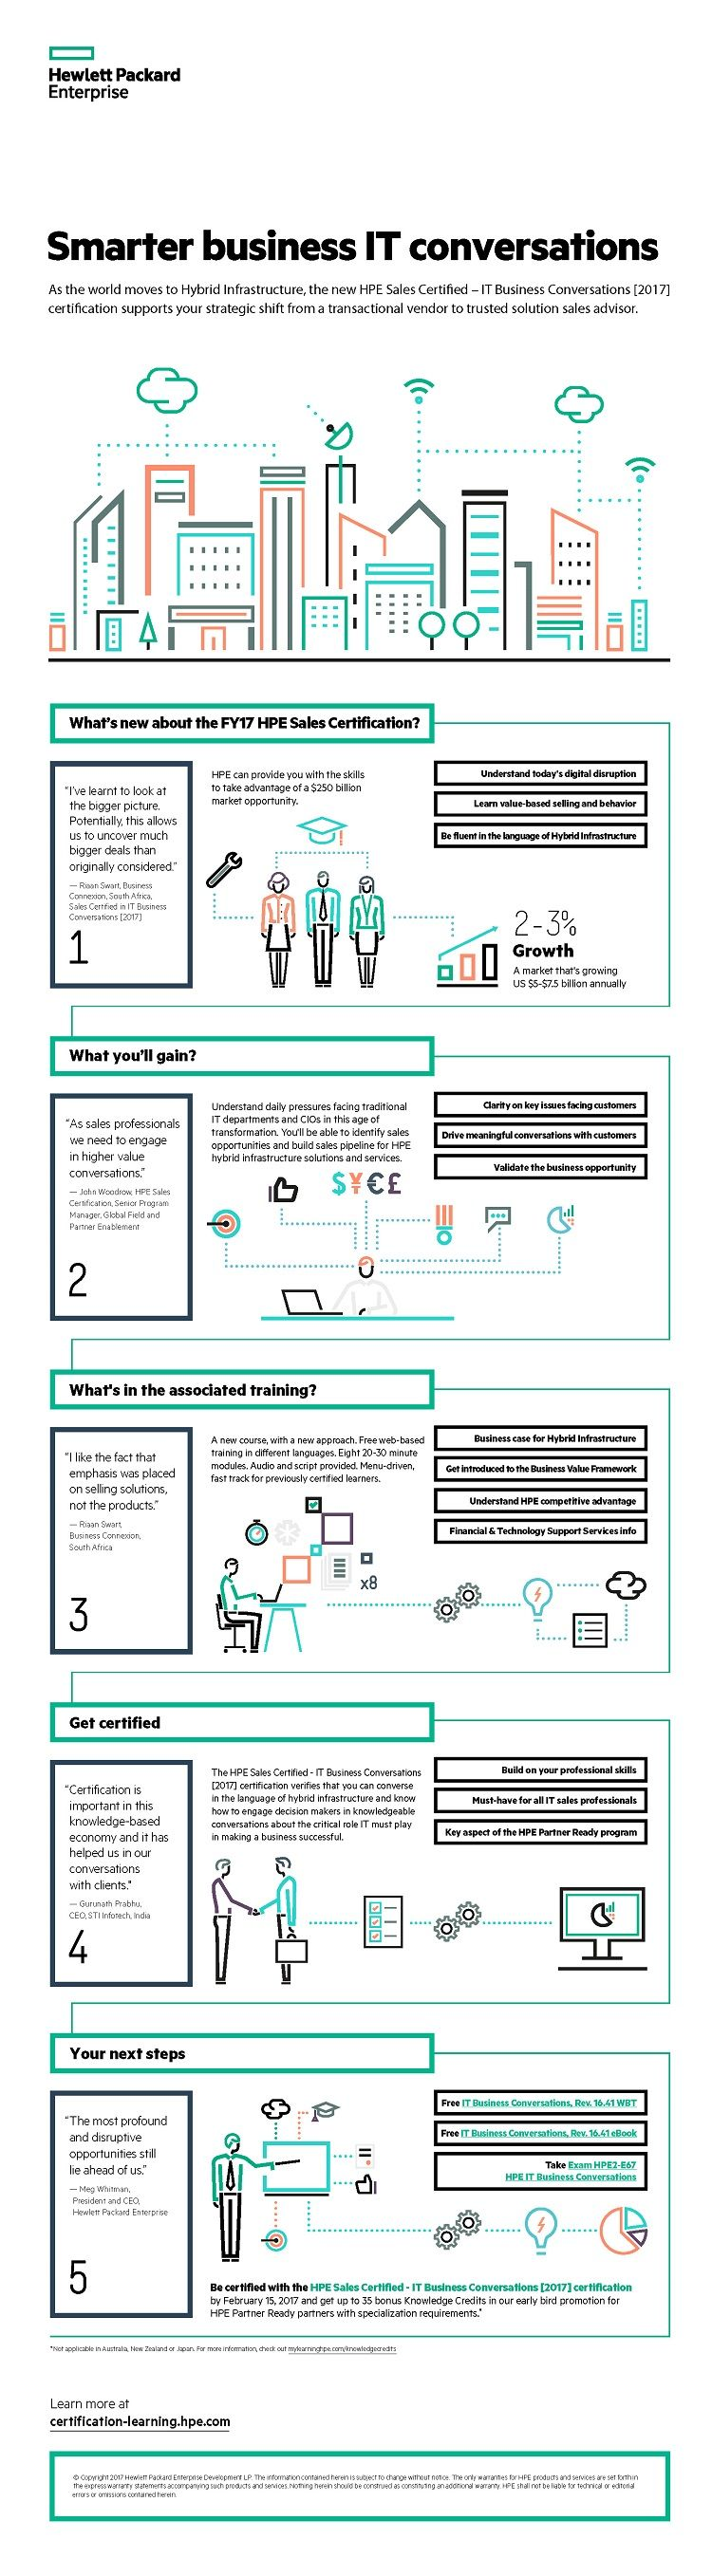 HPE_2017 Sales Certification with KC Promotion_Infographic_750 wide.jpg